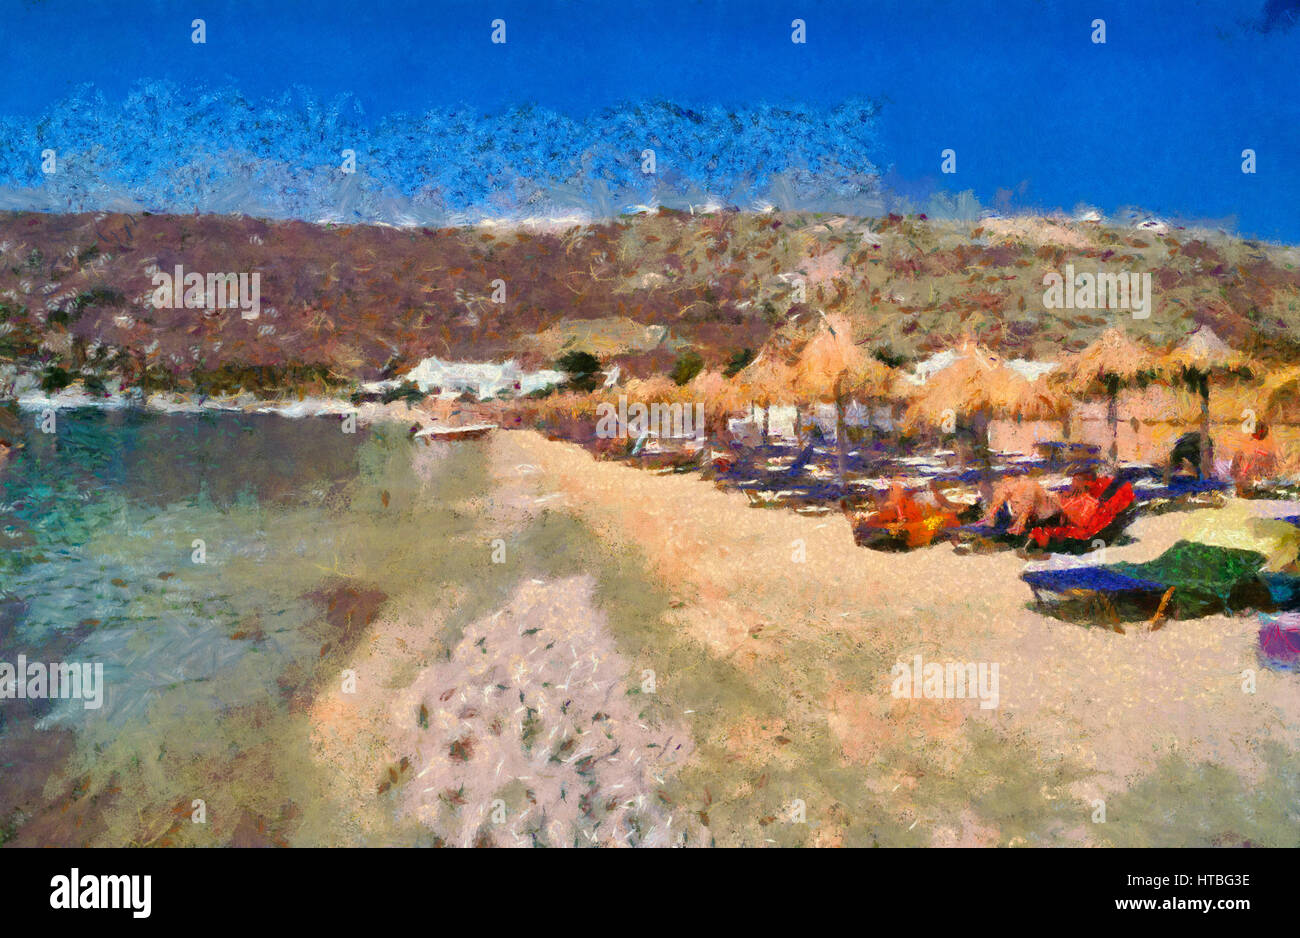 Best Island Beaches For Partying Mykonos St Barts: Psarou Stock Photos & Psarou Stock Images